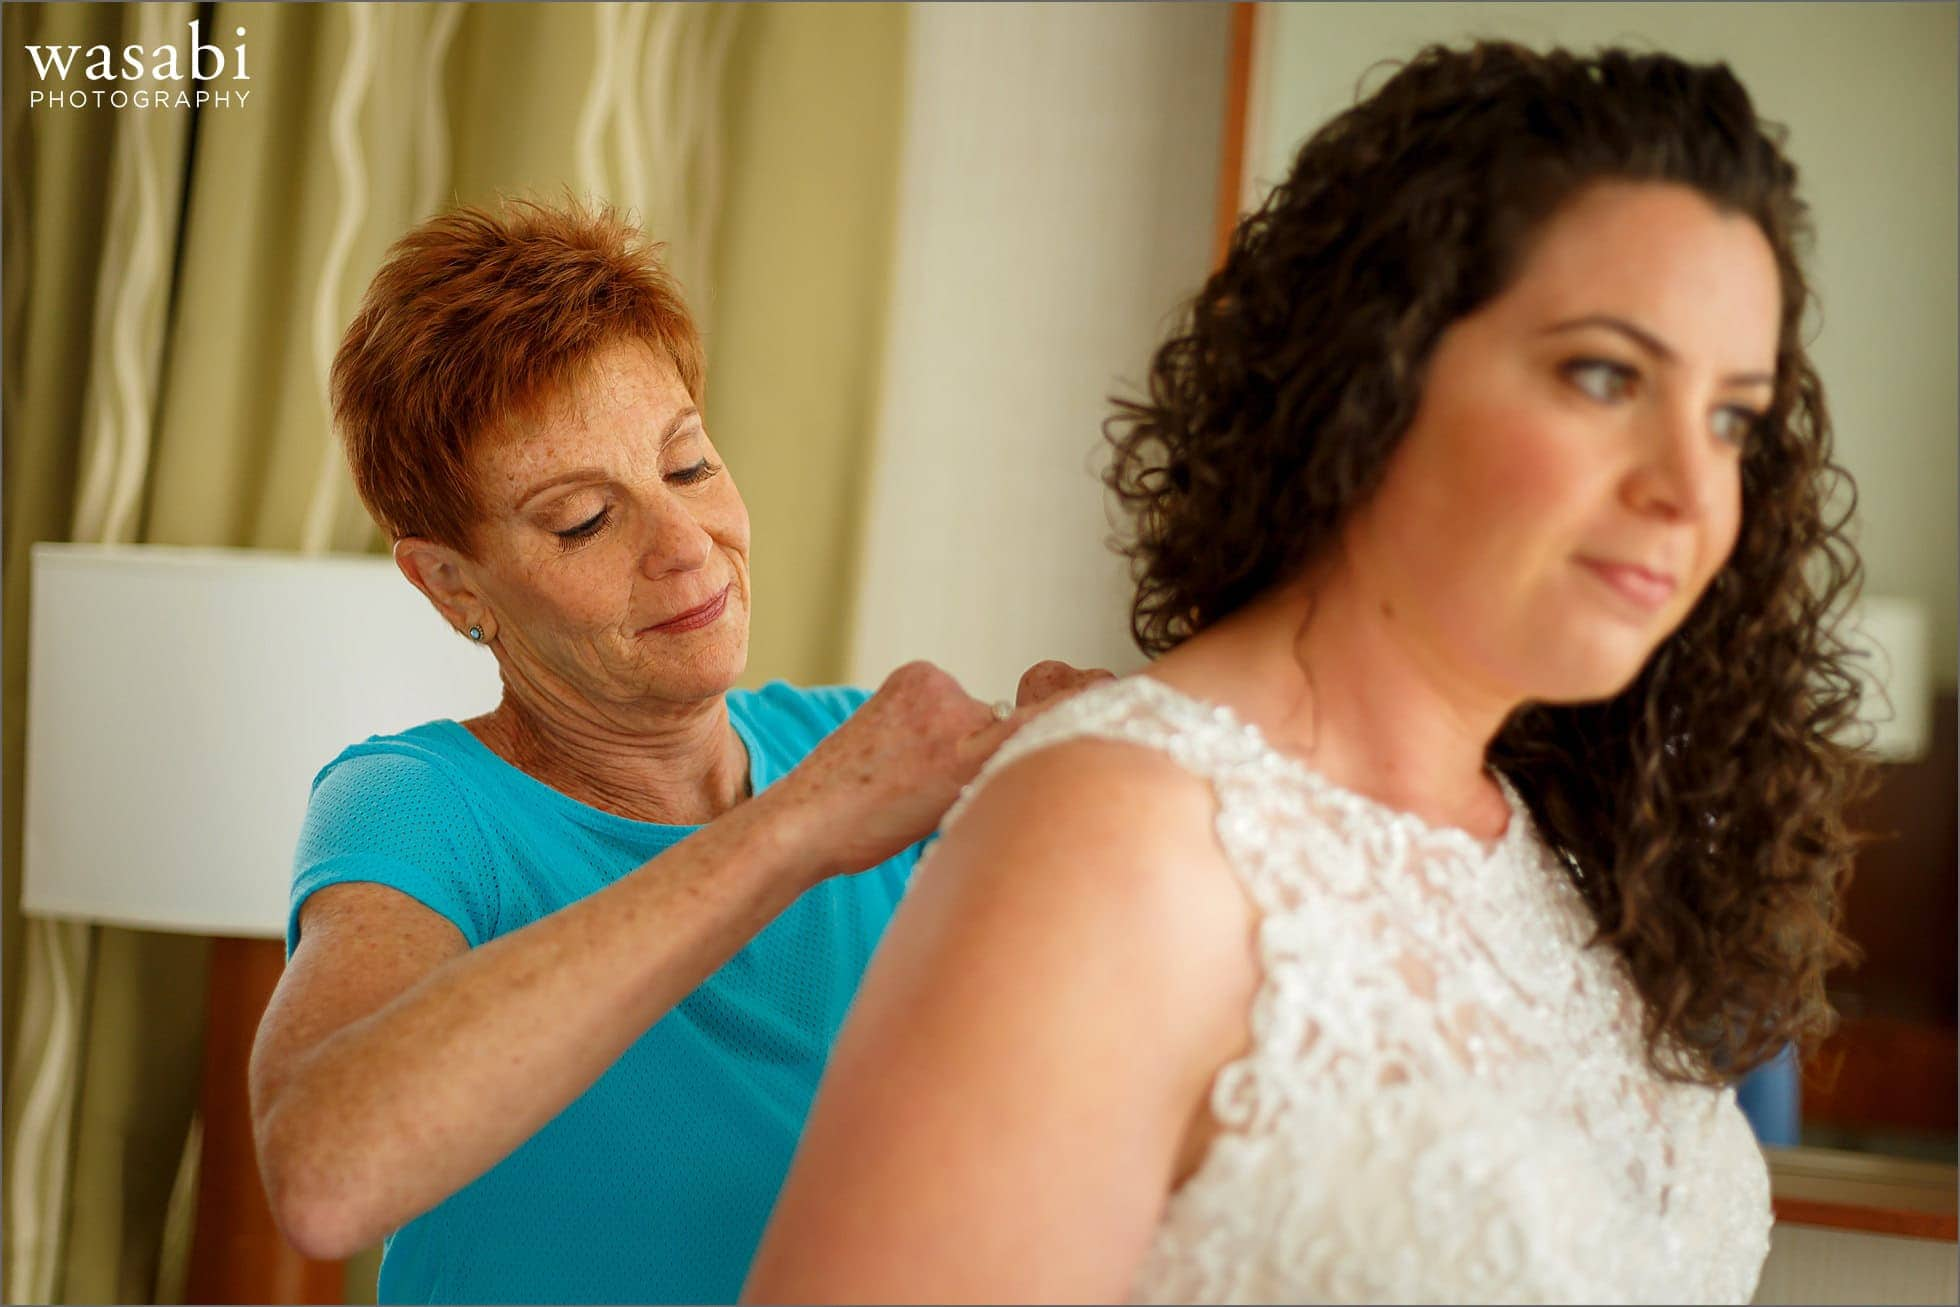 mom helps bride finish putting on wedding dress at Lombard Westin Hotel